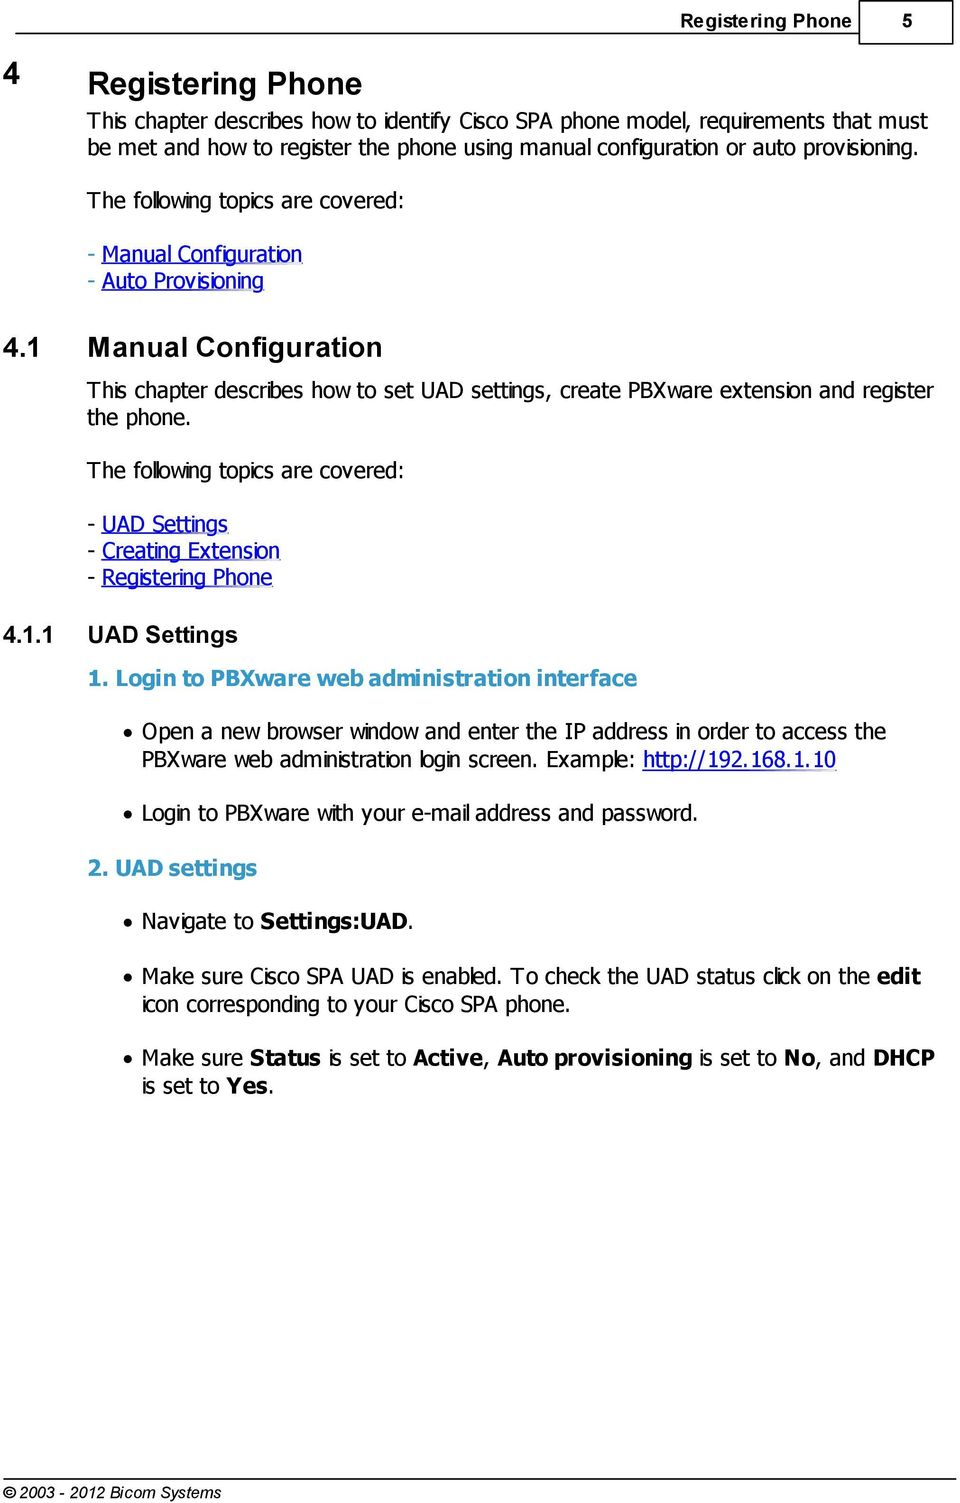 1 Manual Configuration This chapter describes how to set UAD settings, create PBXware extension and register the phone.